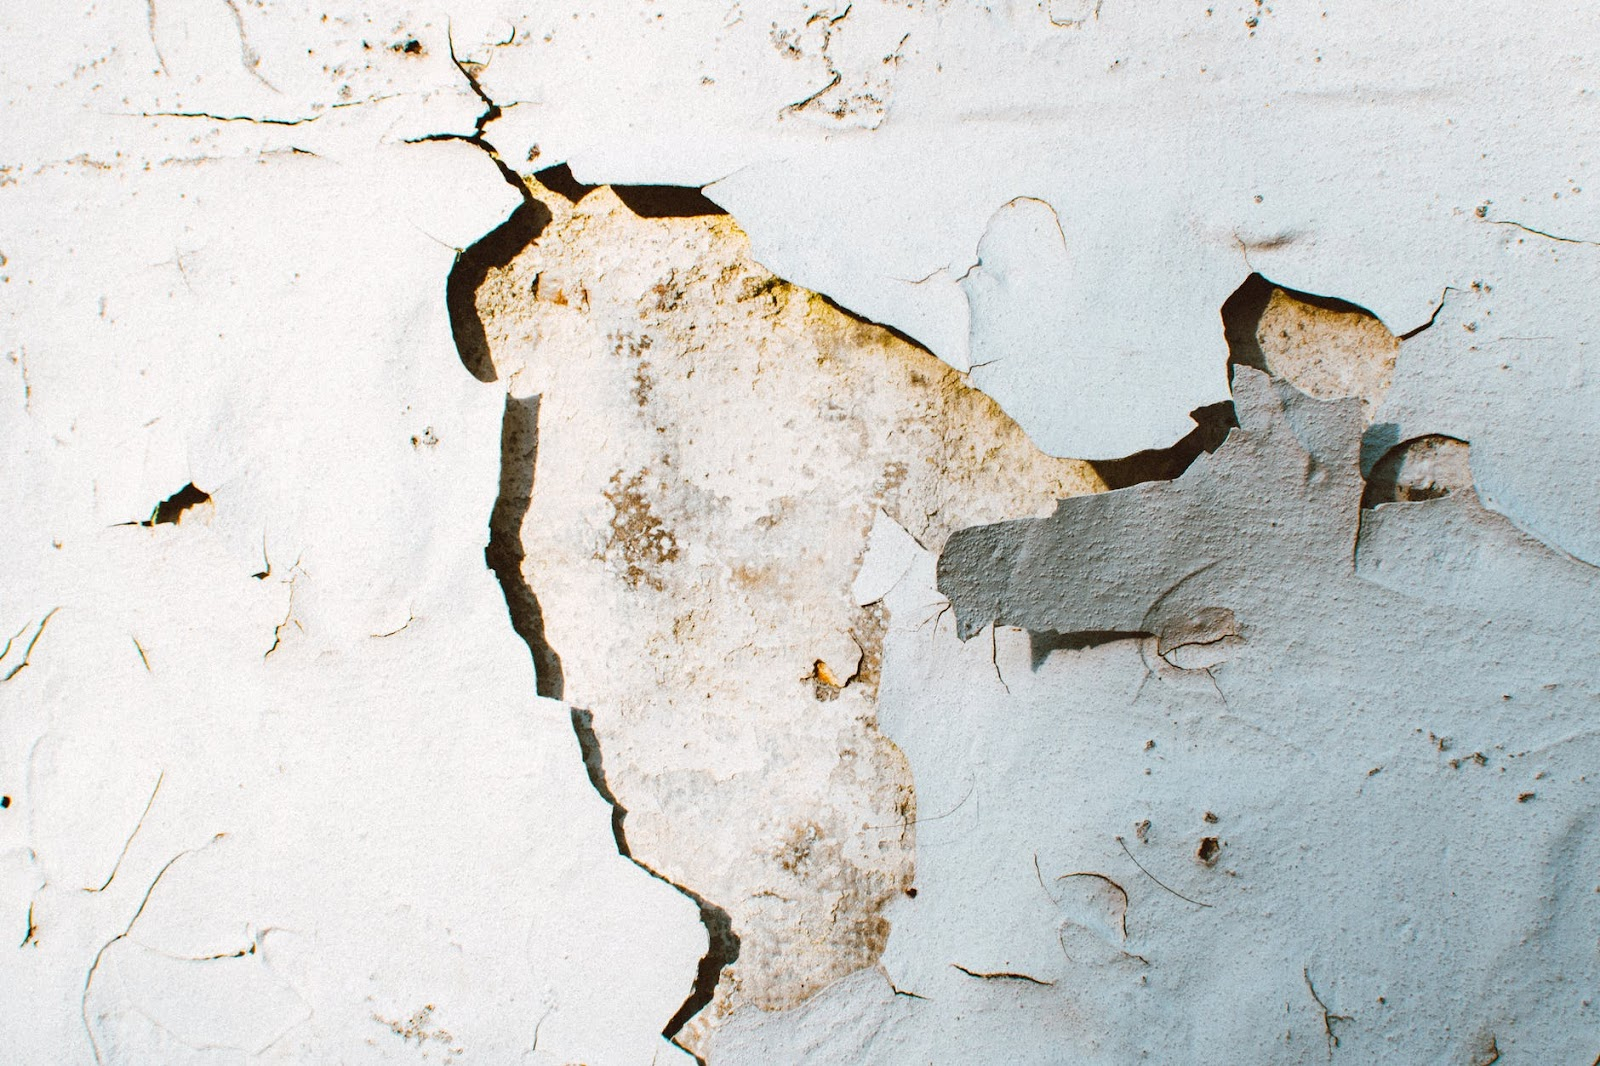 How To Plaster A Wall Like A Professional: A Step-By-Step Guide